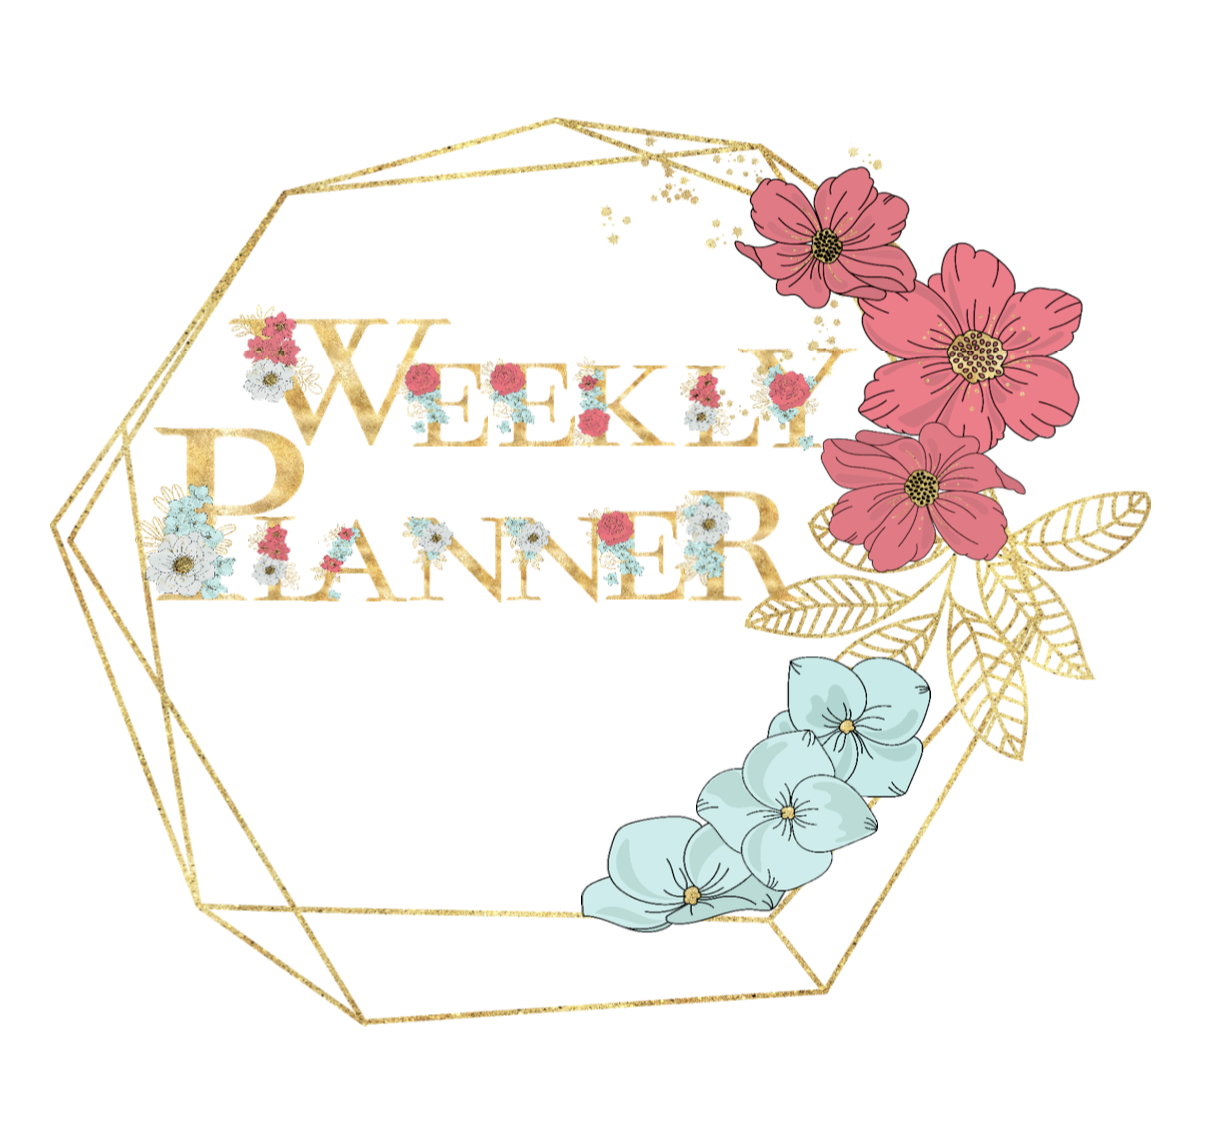 Weekly Planner feat. Daily To Do List, Meal Plans, Appointments and Notes (8 page PDF)